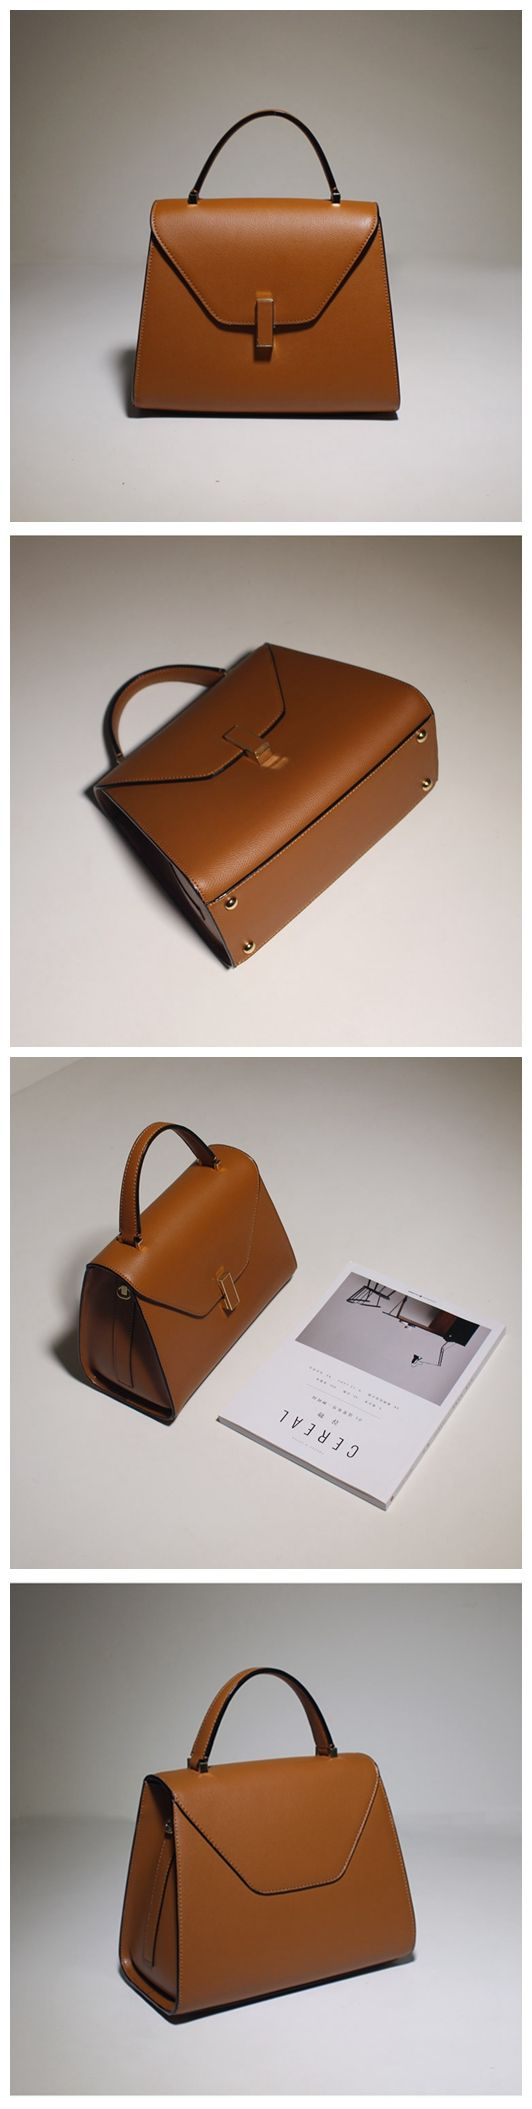 Women's Fashion Leather Handbag Shoulder Bag Cross Body Bag Messenger Satchel Purse MY02 Overview: Design: Women's Fashion Handbag Shoulder Bag In Stock: 3-5 days for making Include: Leather handbag a